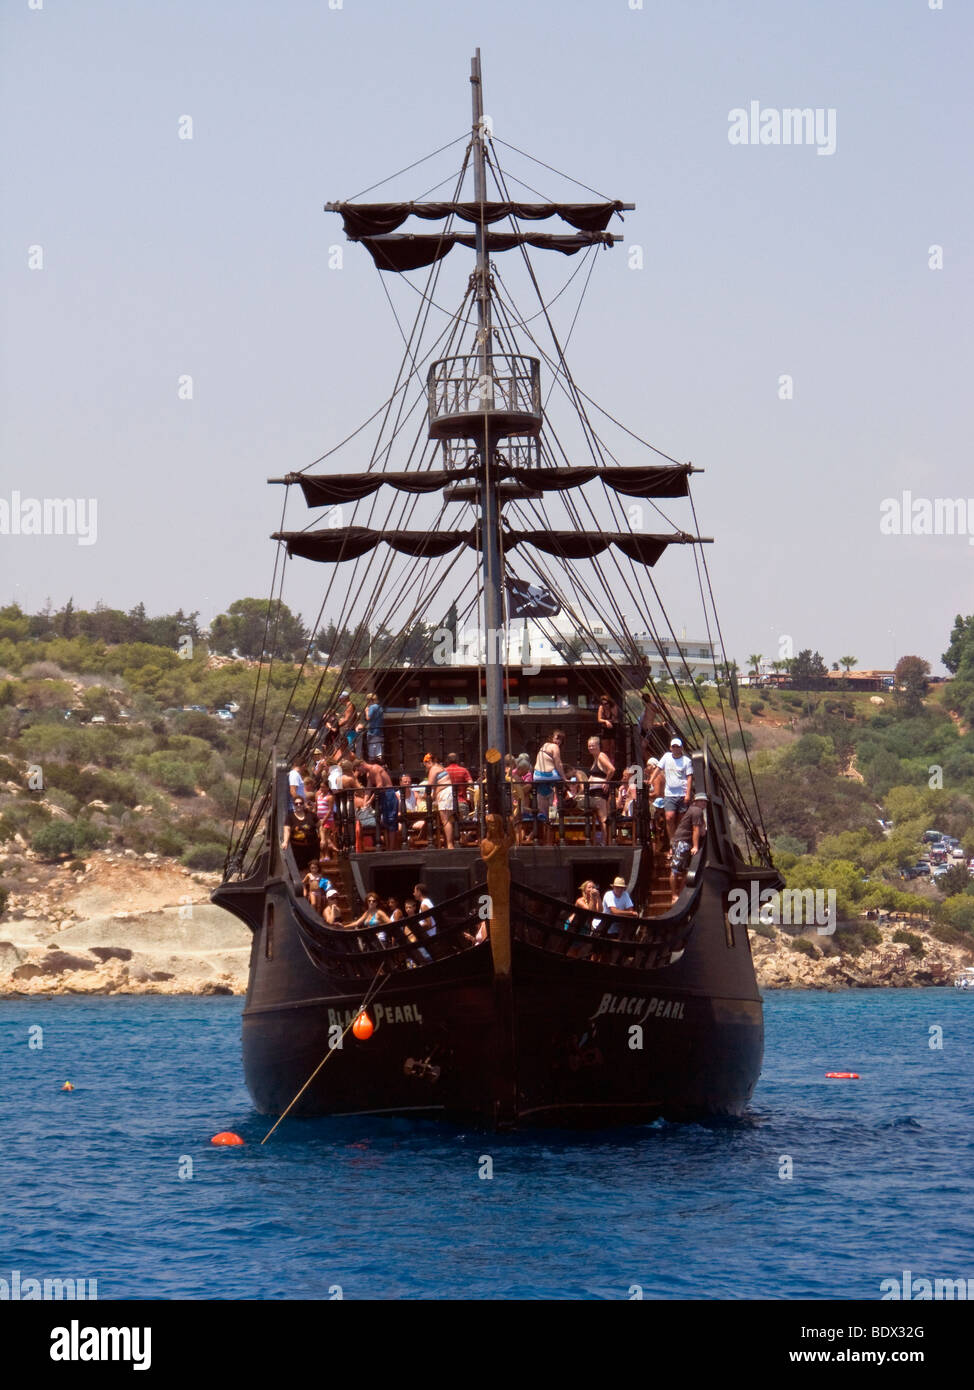 The Black Pearl, a tourist day-cruise ship at Ayia Napa, Cyprus. - Stock Image